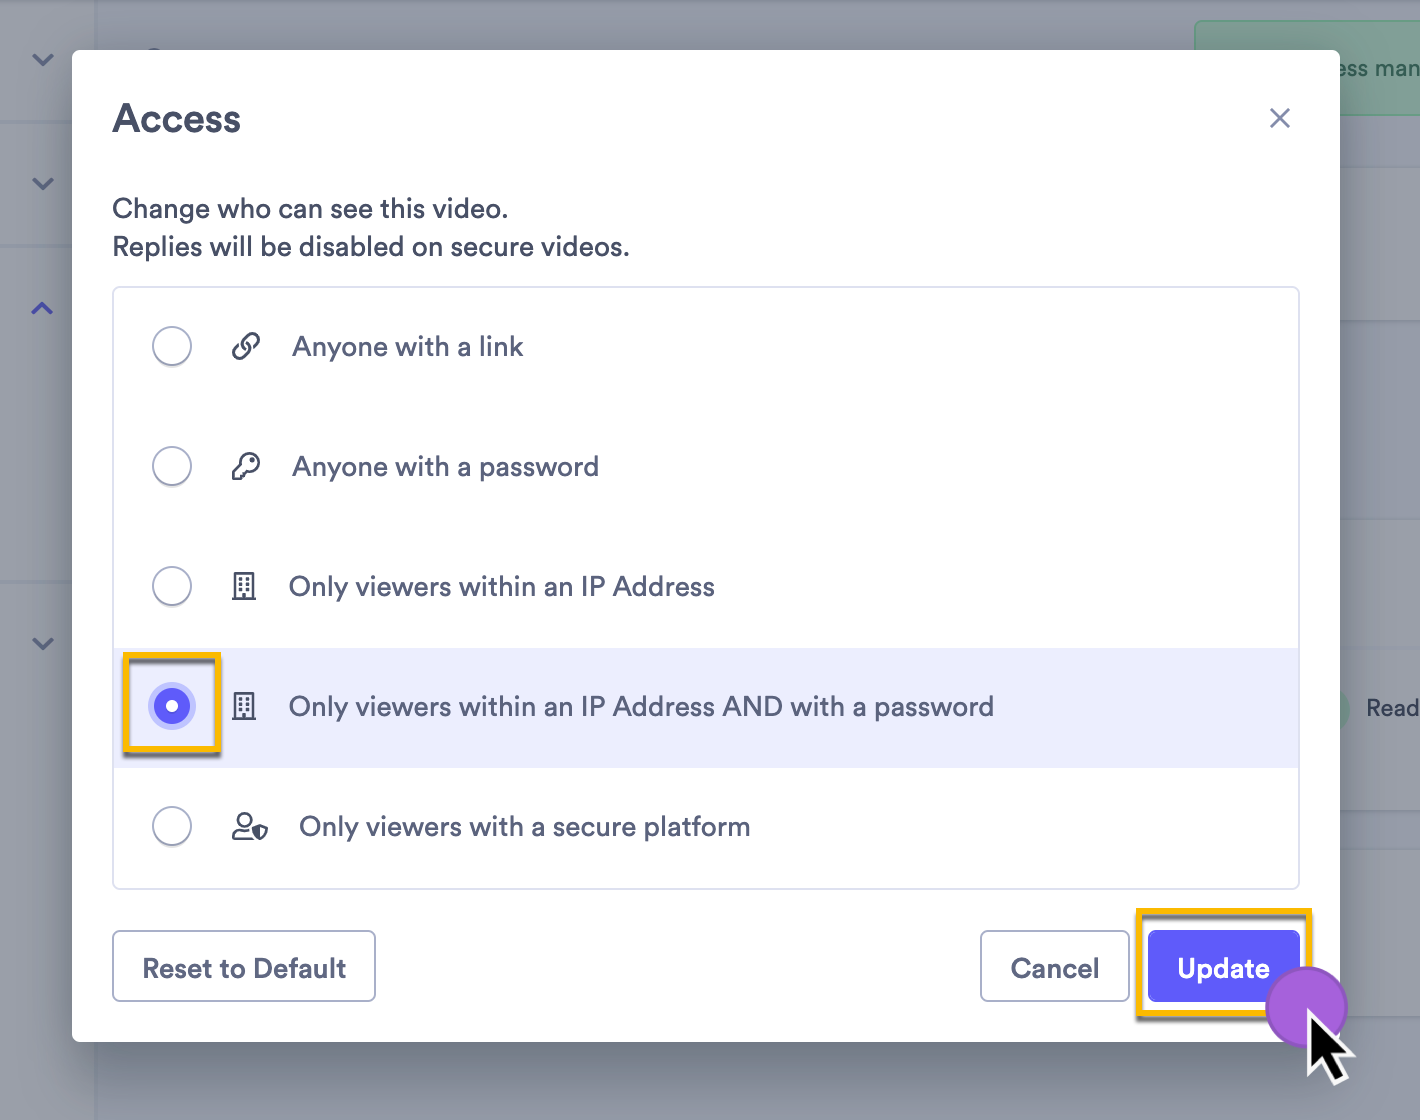 Selecting the access setting on a video that requires viewers to also enter a password, in addition to being connected to a permitted IP address